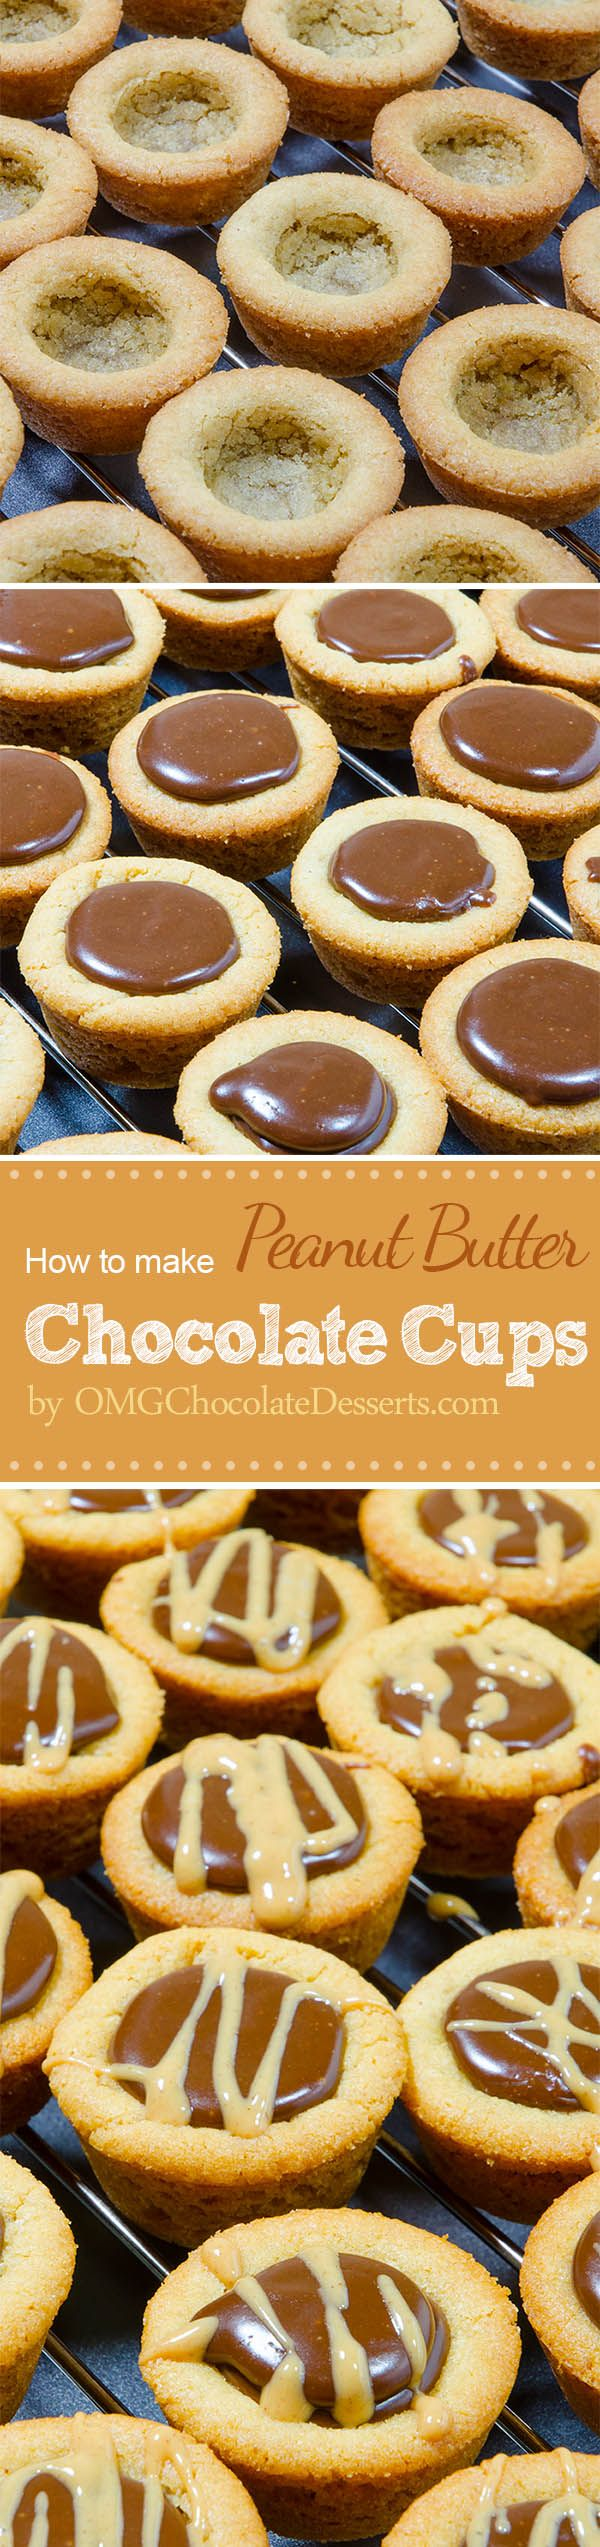 Peanut Butter Chocolate Cups